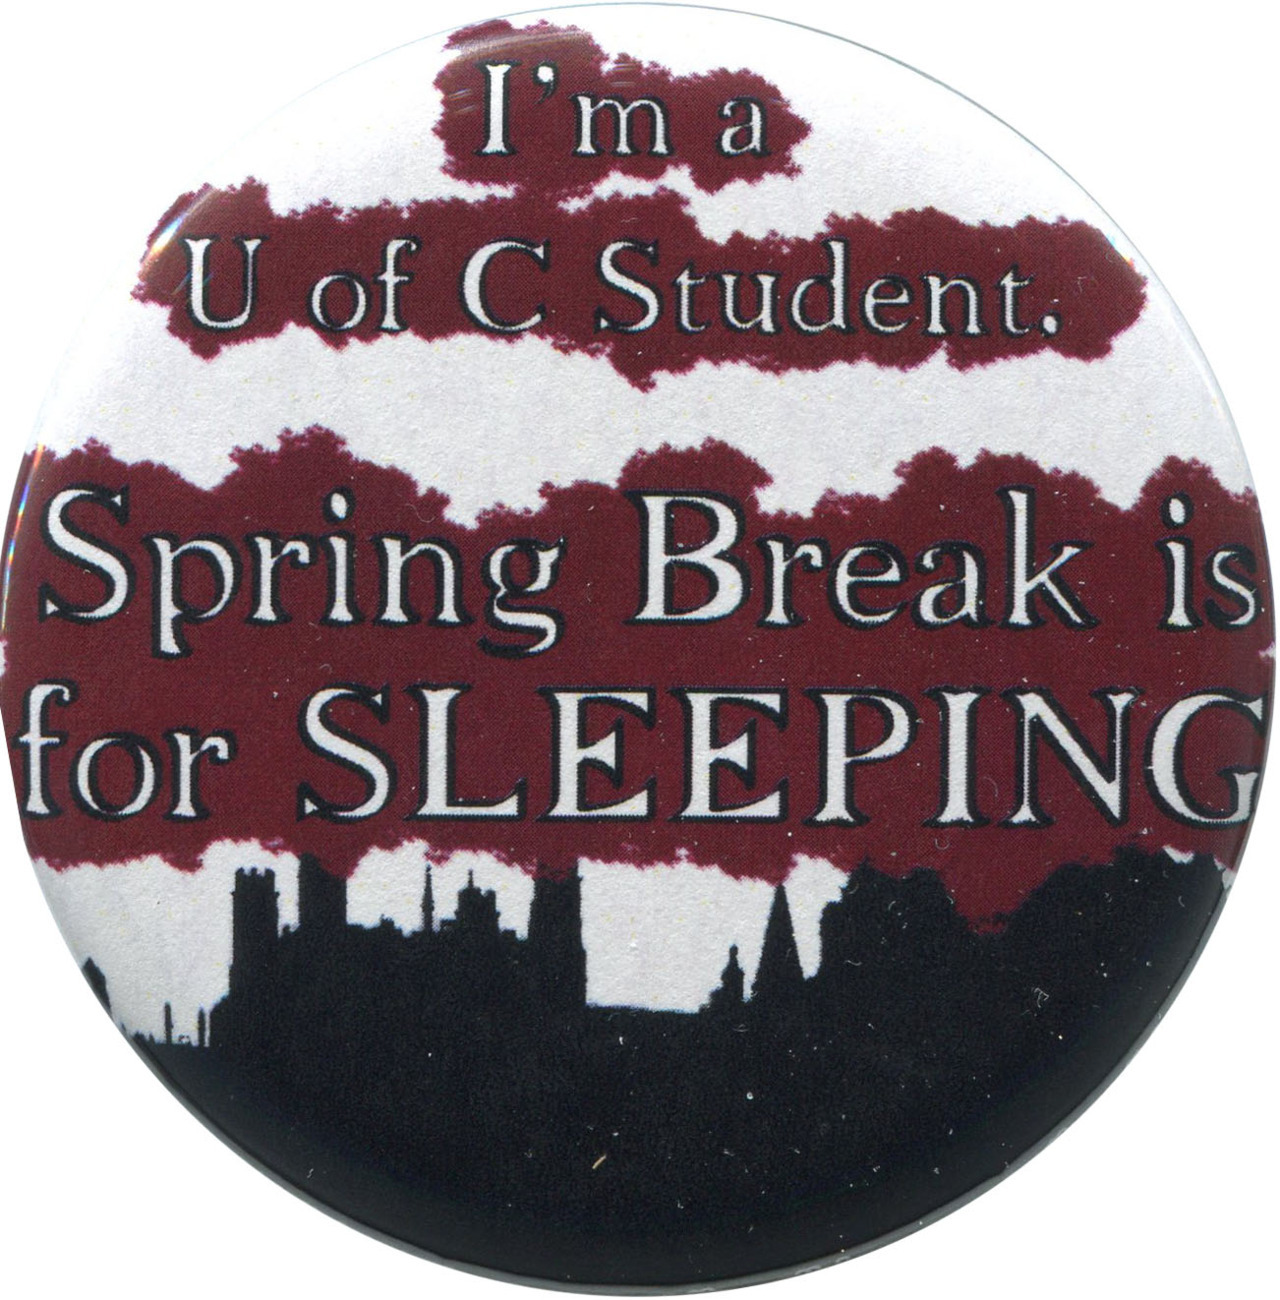 """Spring Break is for sleeping"" available from http://antieuclid.com/academia/university-of-chicago/spring-break-is-for-sleeping.html"